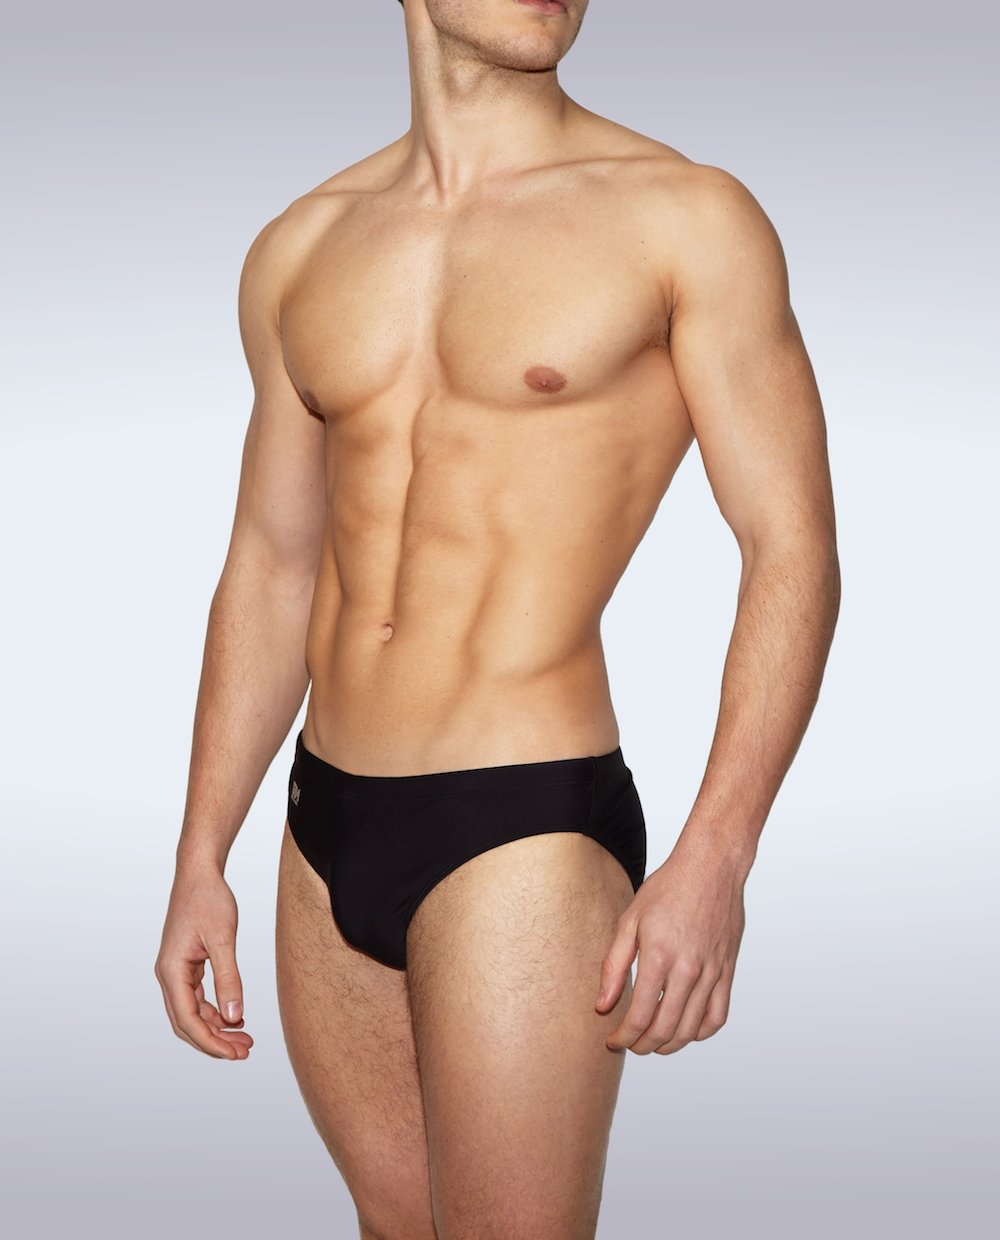 Umbria Swim Brief - Garçon Underwear sexy men's underwear Swim Brief Garçon Underwear